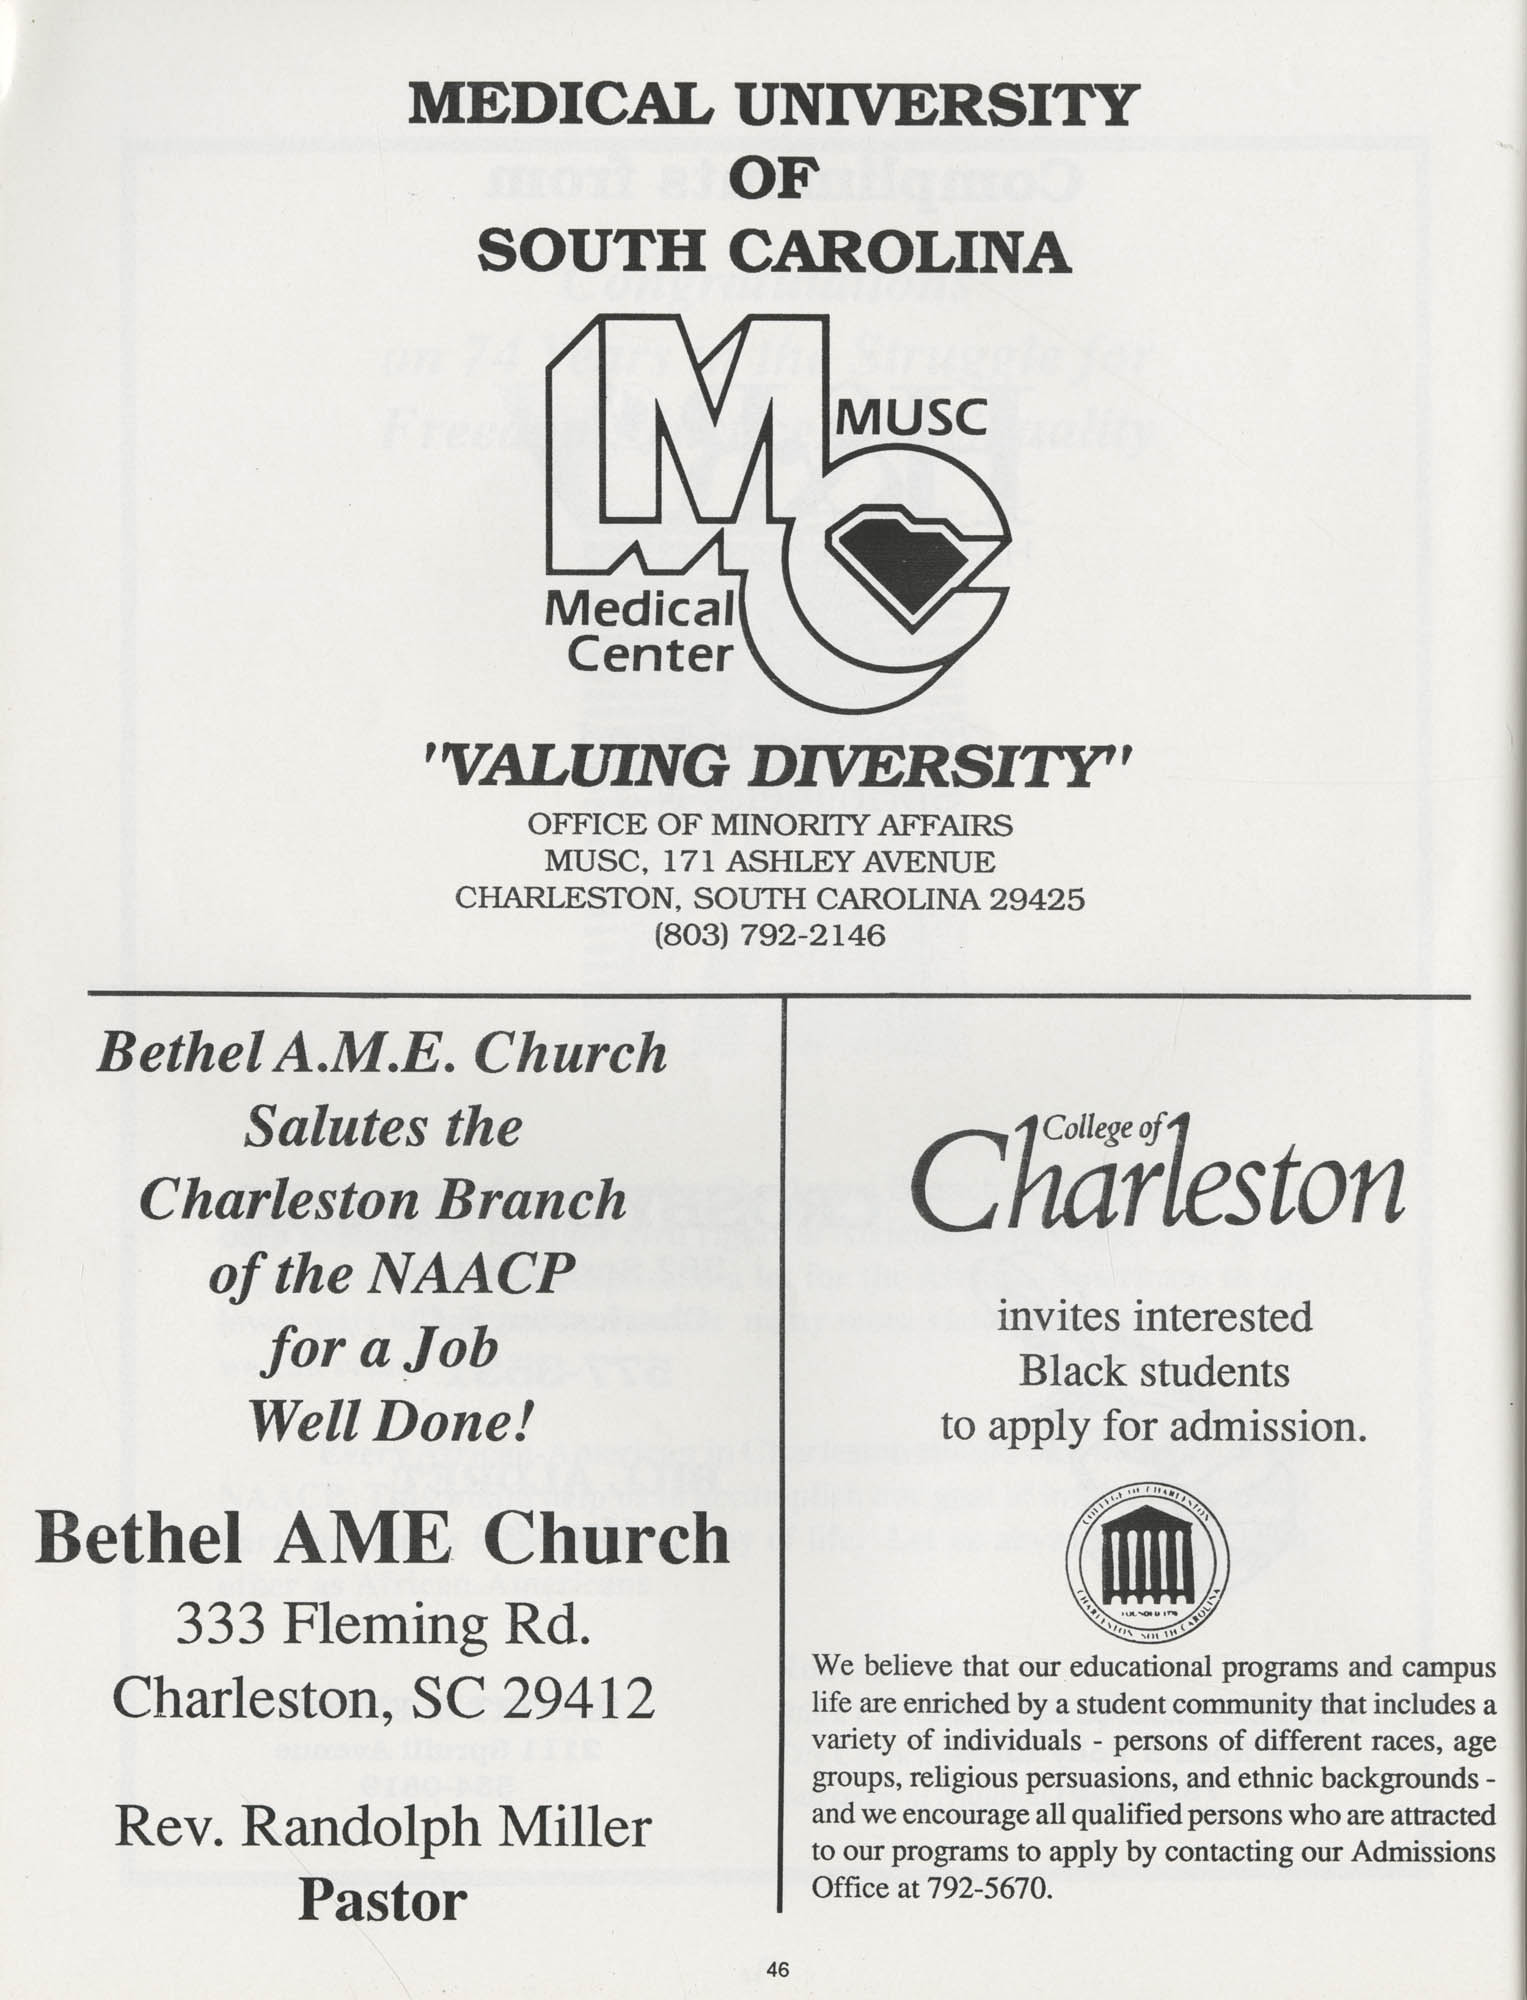 1990 NAACP Freedom Fund Magazine, Charleston Branch of the NAACP, 74th Anniversary, Page 46